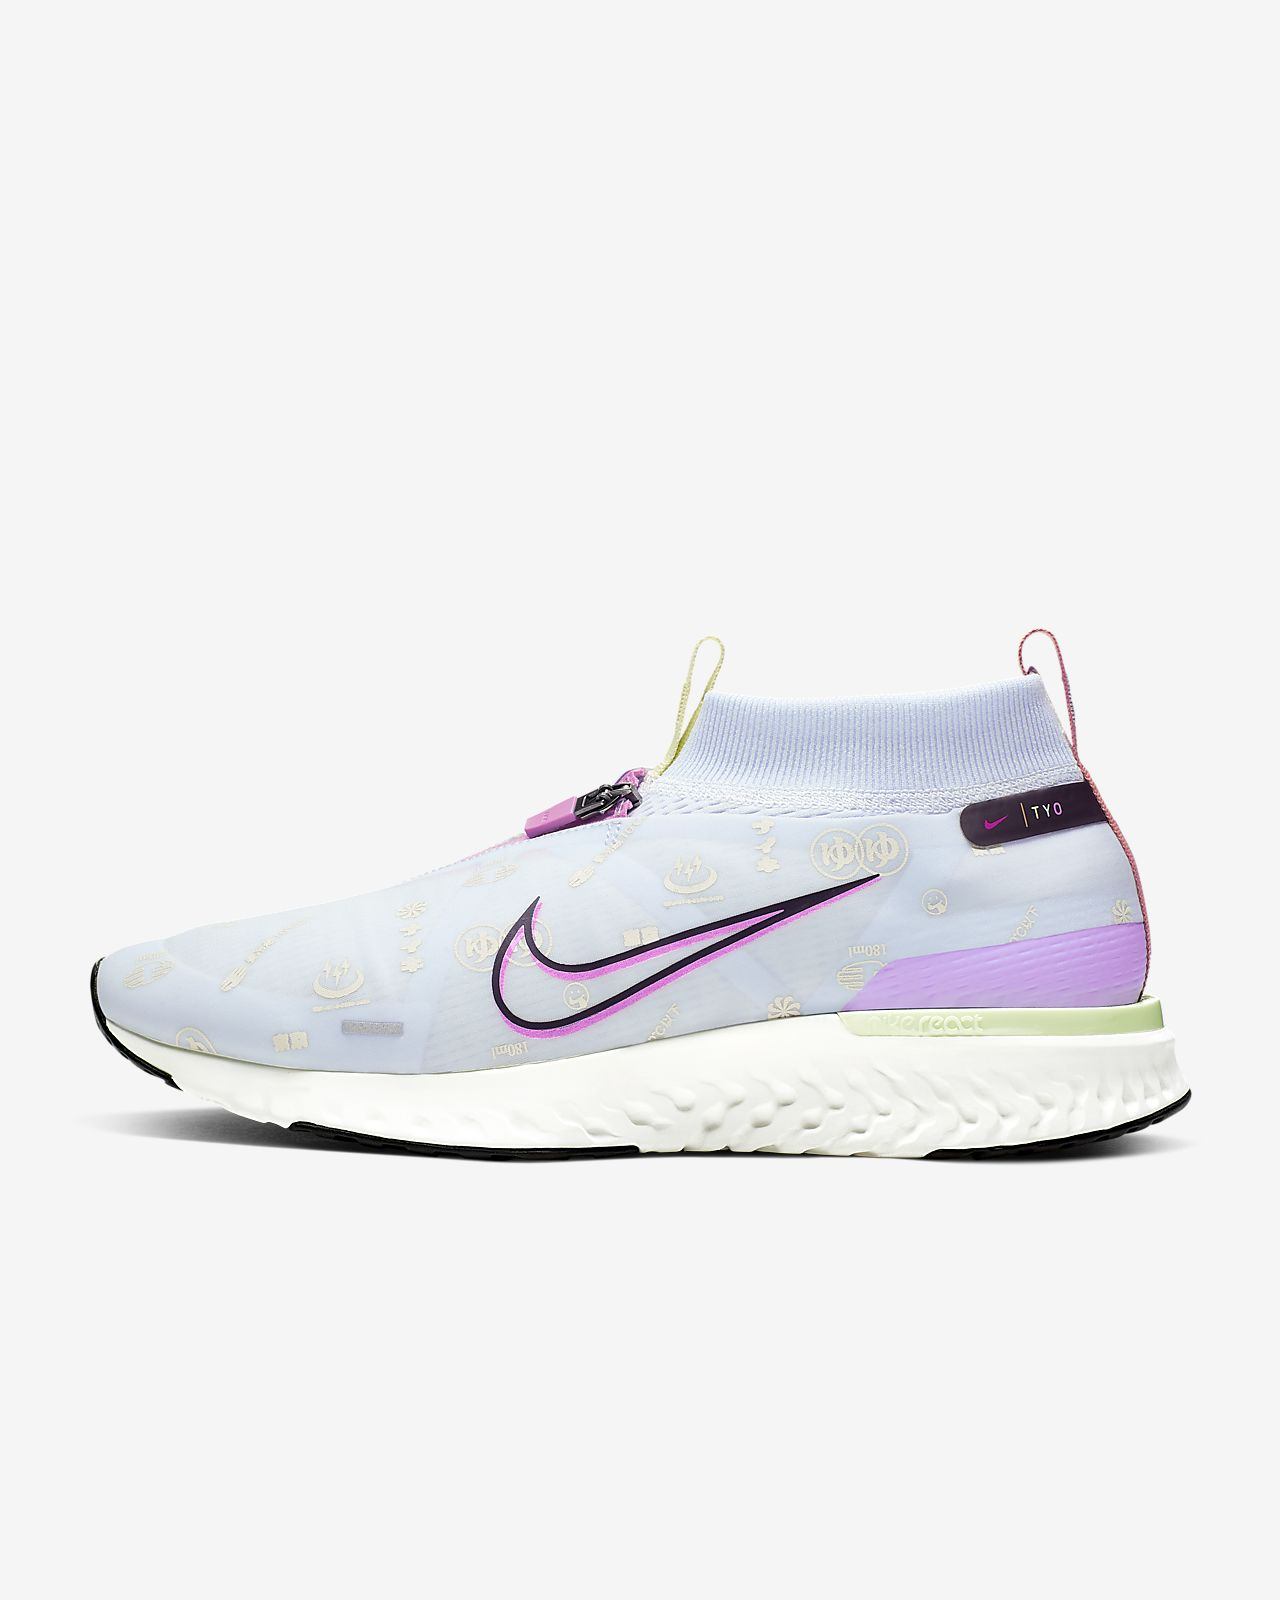 Nike React City Premium Men's Running Shoe